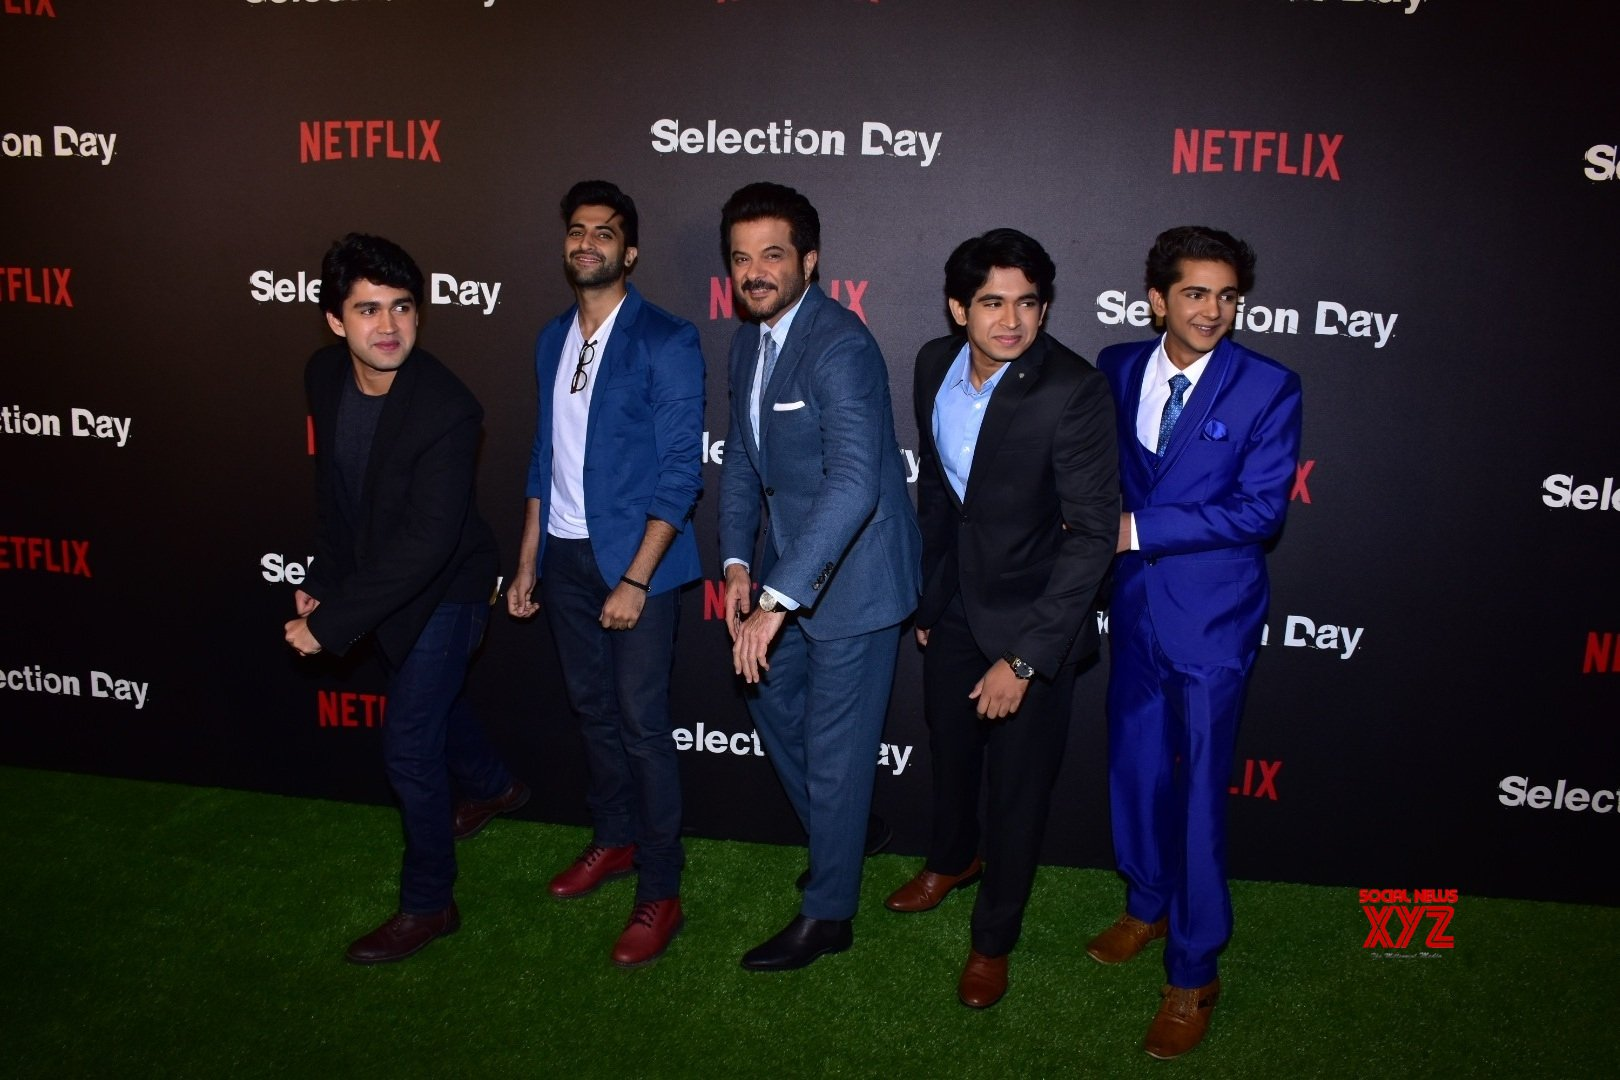 Selection Day' is Netflix's best Indian series to date (Review